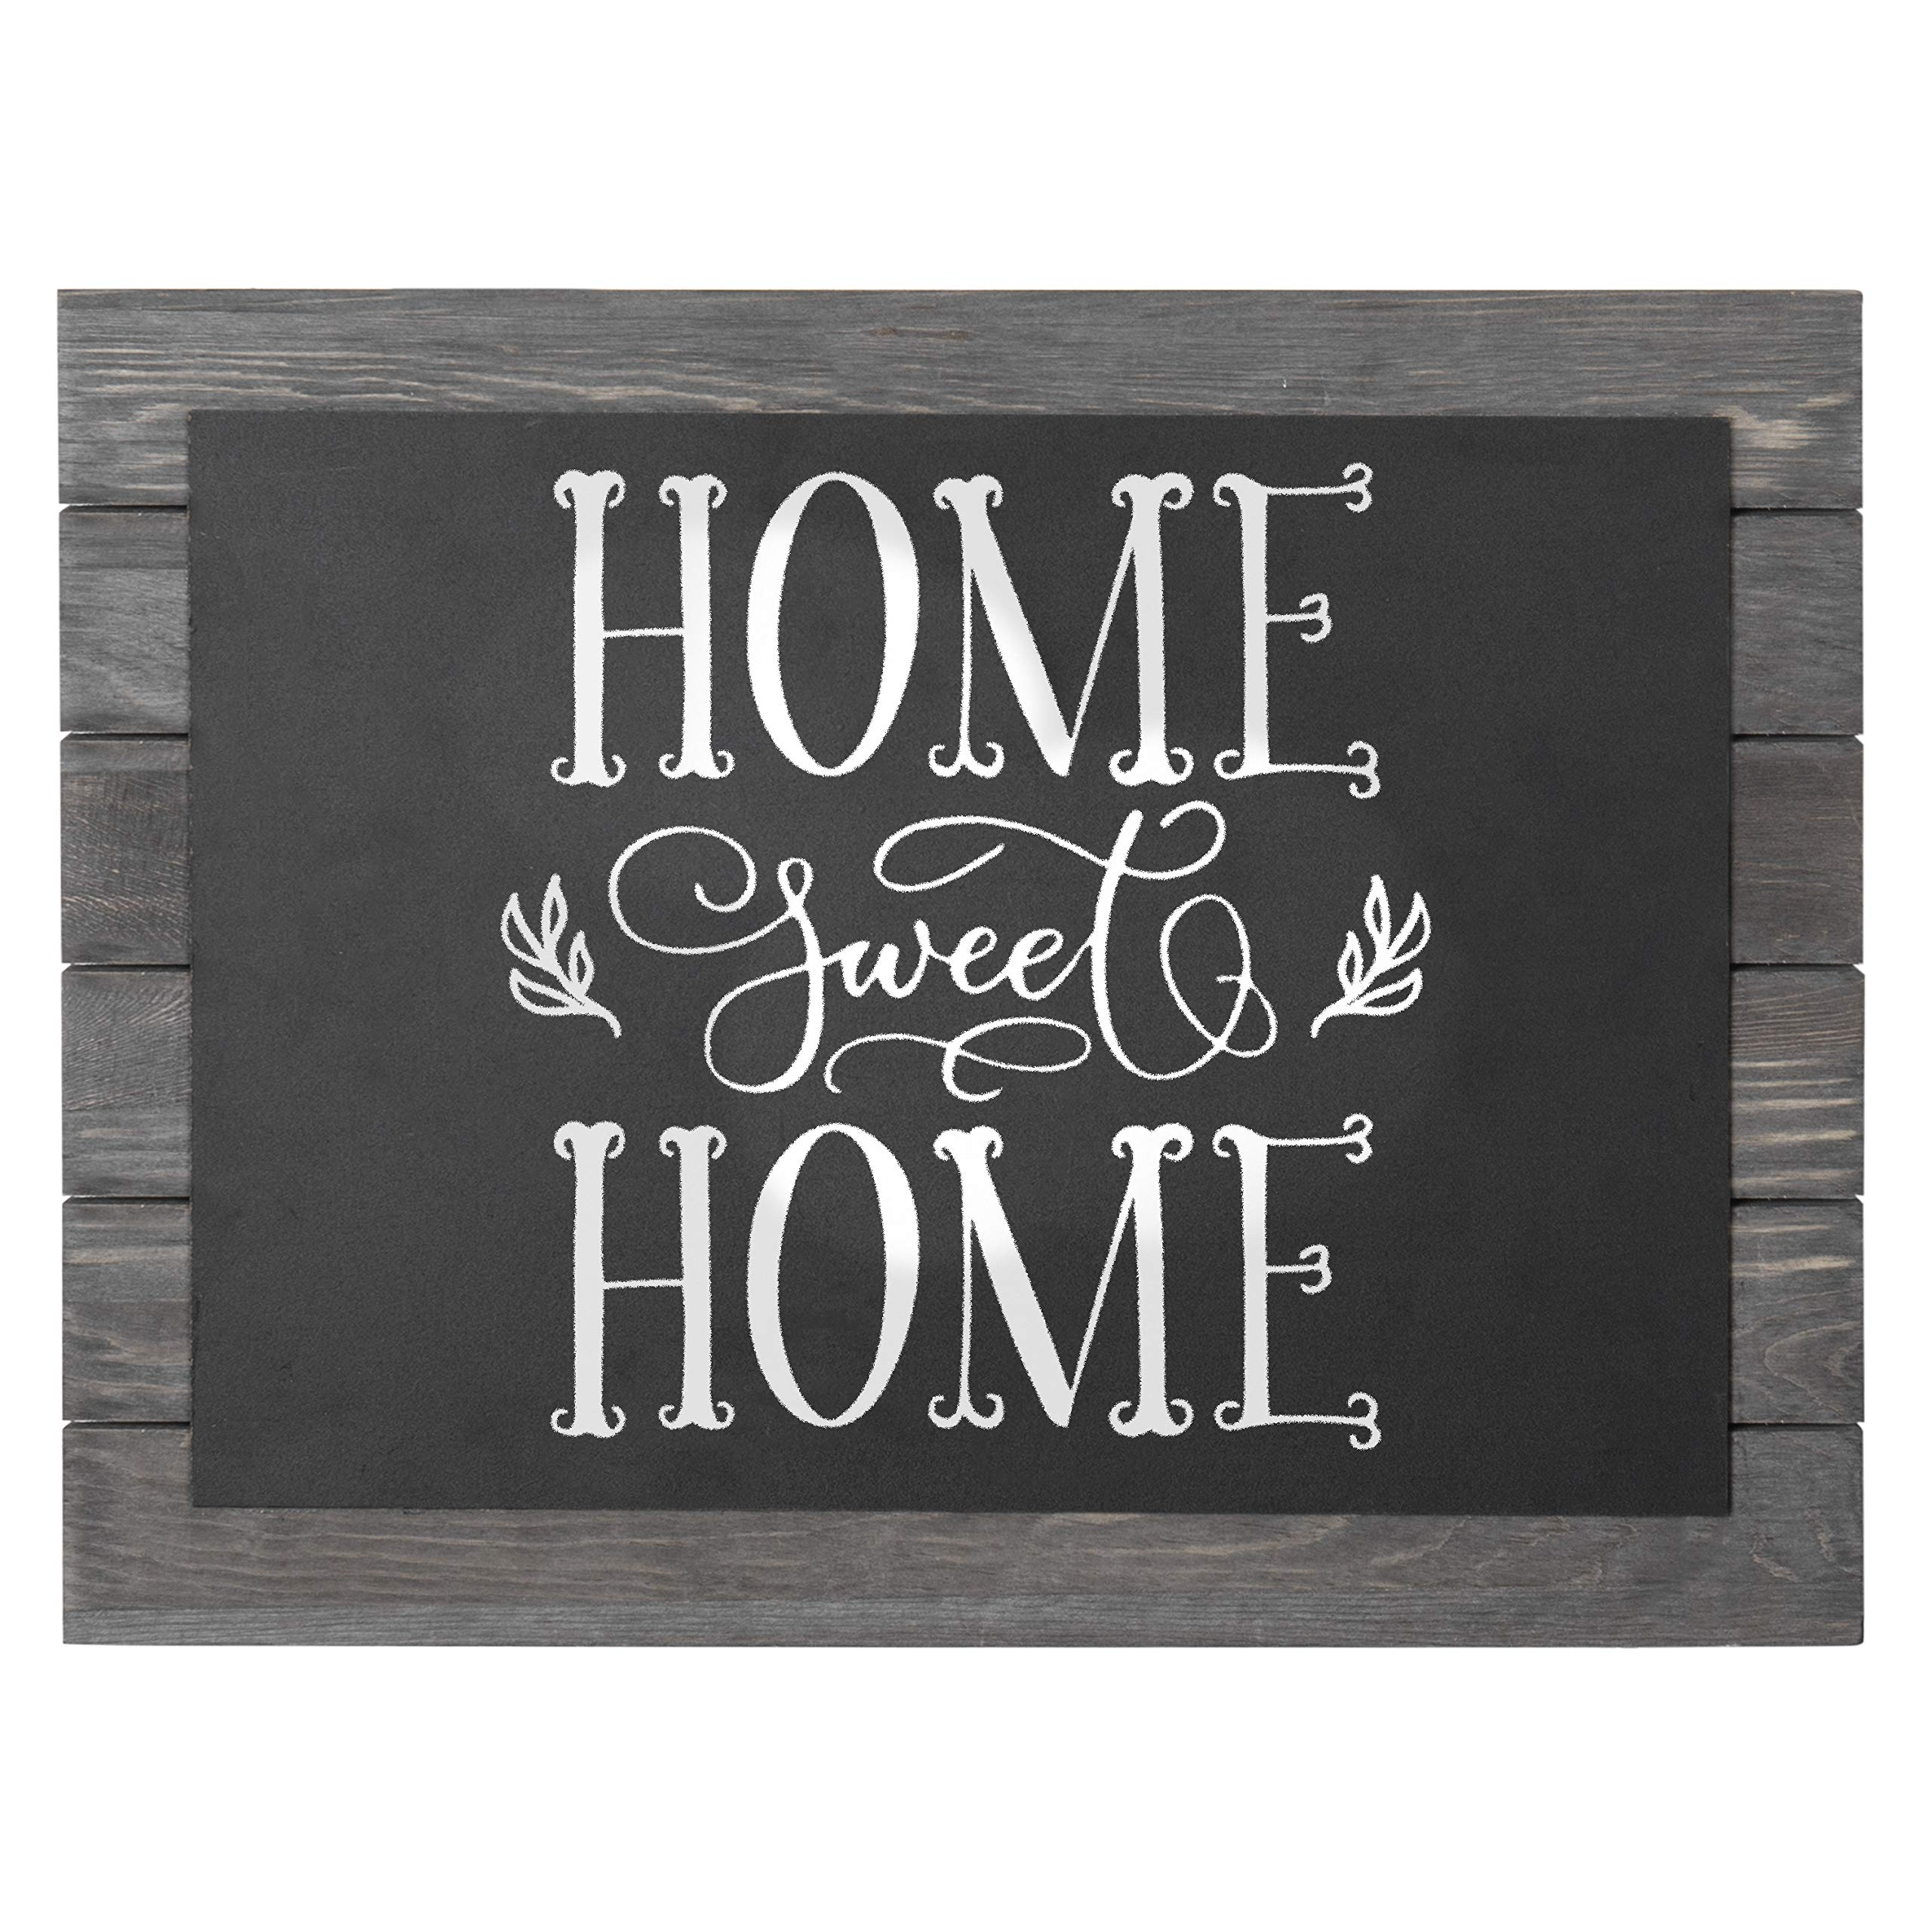 MyGift 16 x 12 Vintage Grey Wood Wall Mounted Framed Chalkboard Sign by MyGift